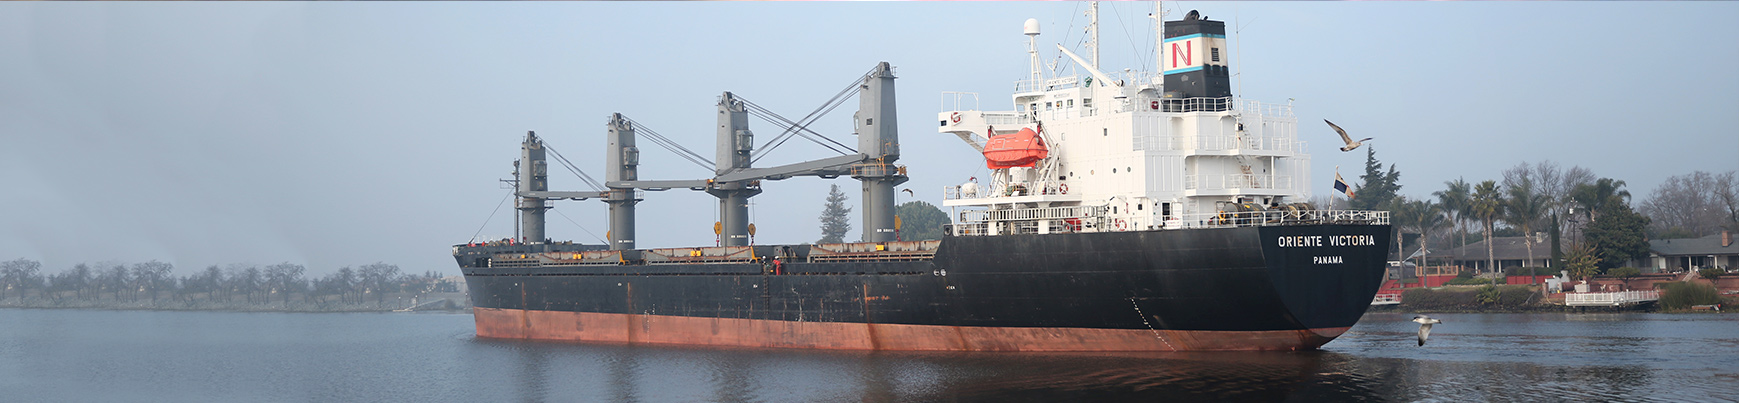 Large cargo ship sailing through river